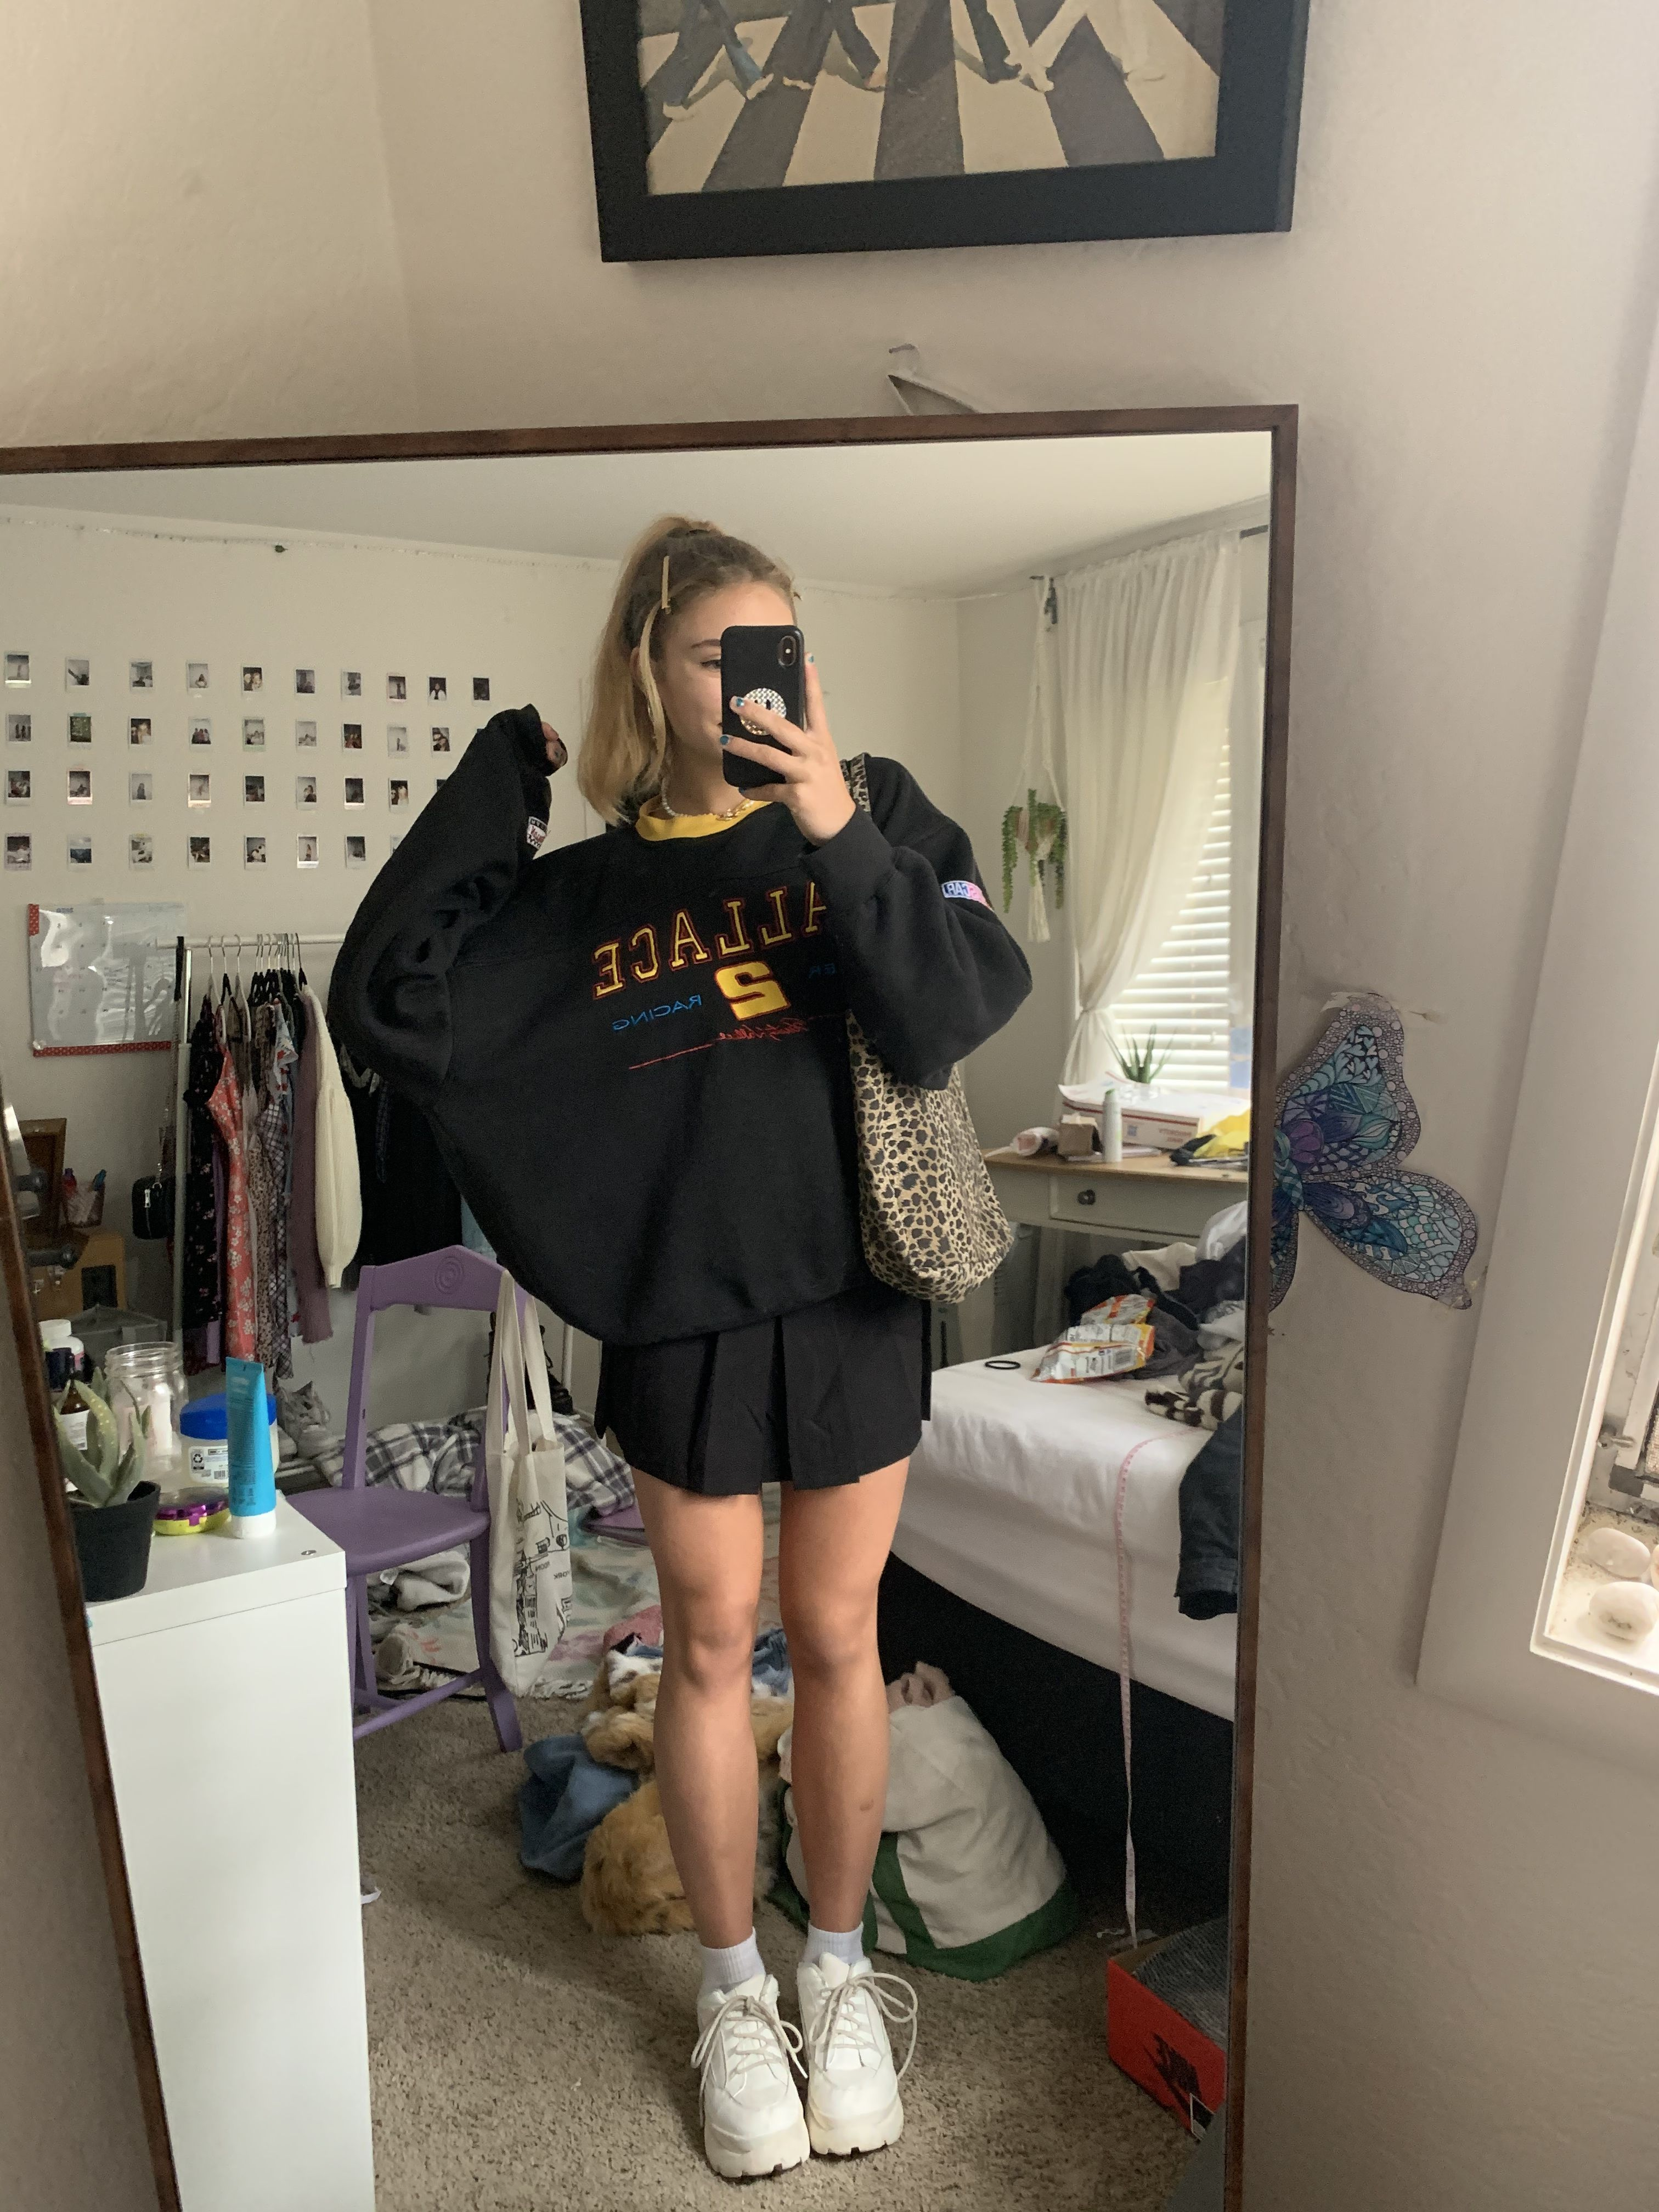 Oversized Sweatshirt In 2020 Tennis Skirt Outfit Fashion Inspo Outfits Cute Casual Outfits